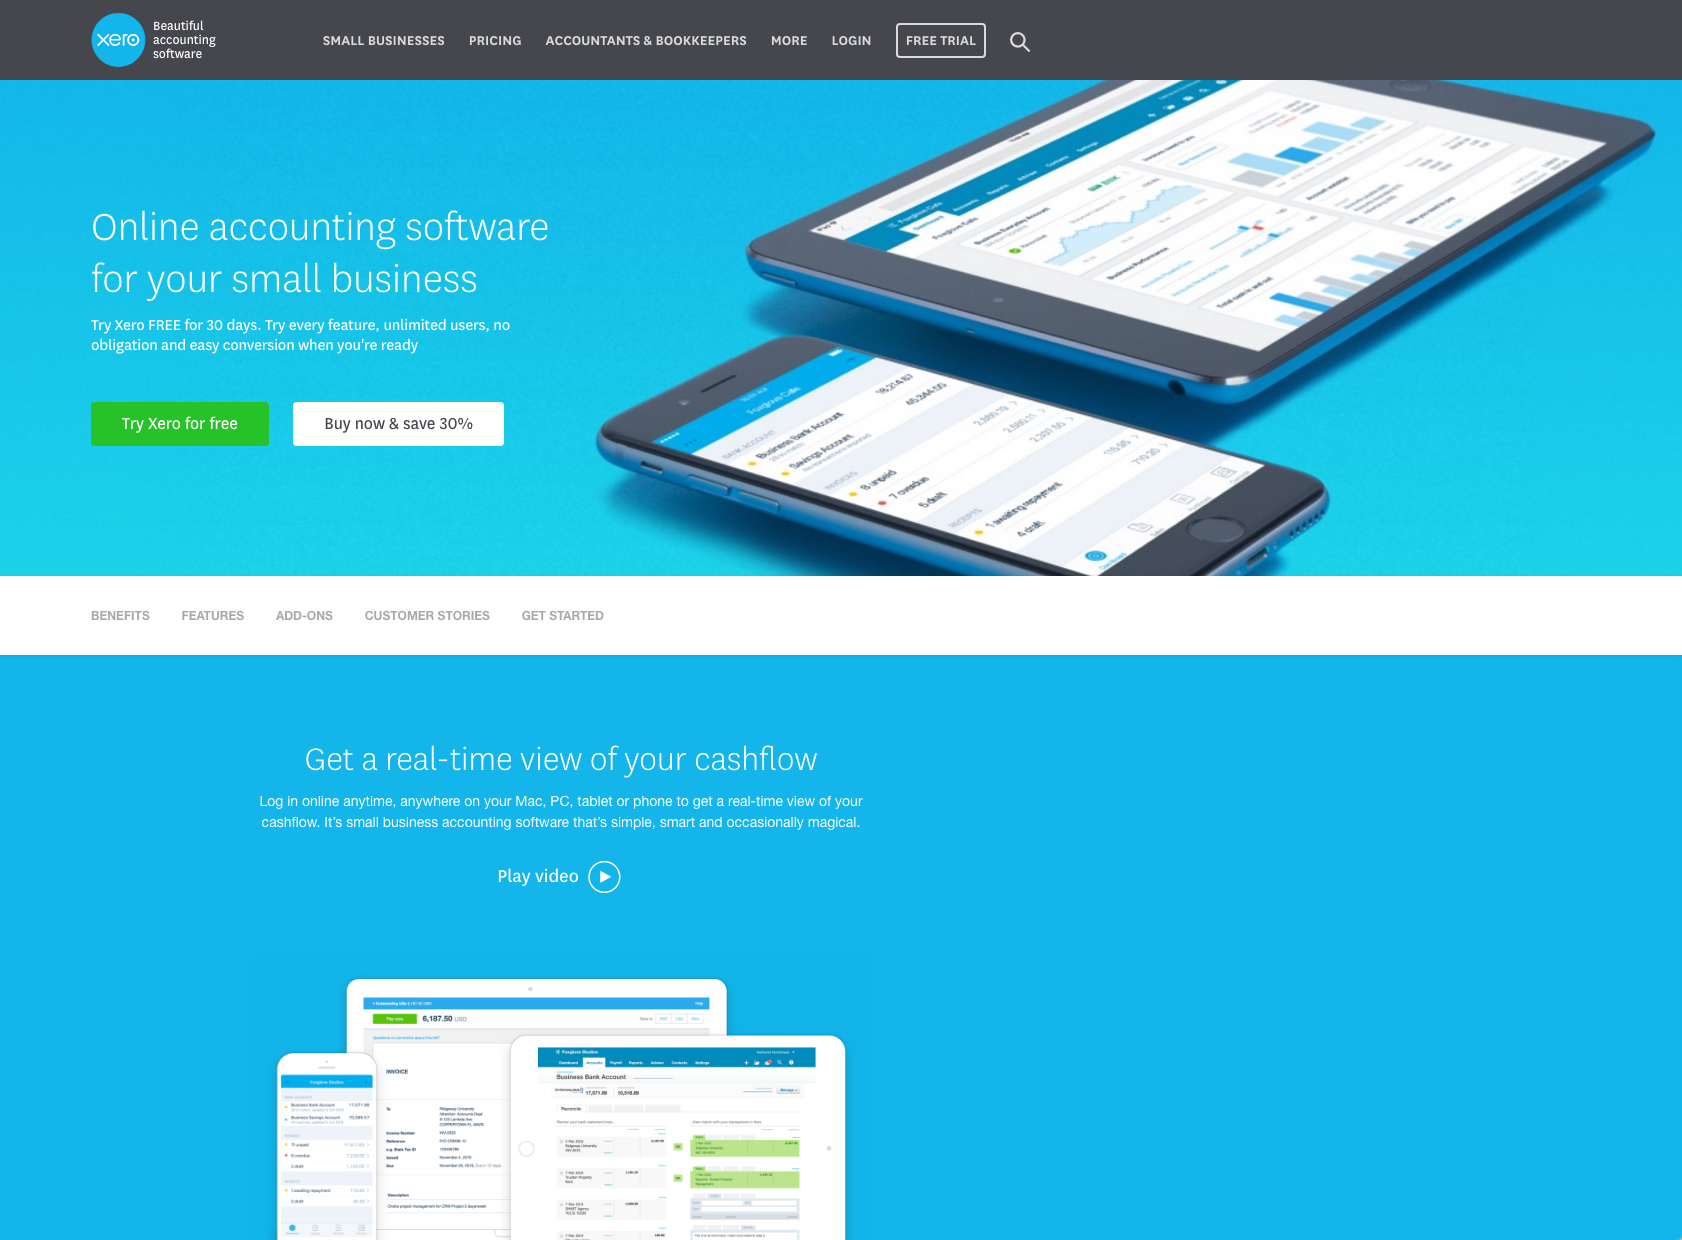 Xero accounting software offers all the features you need such as bill management, expense tracking, payroll, and more at a budget-friendly price